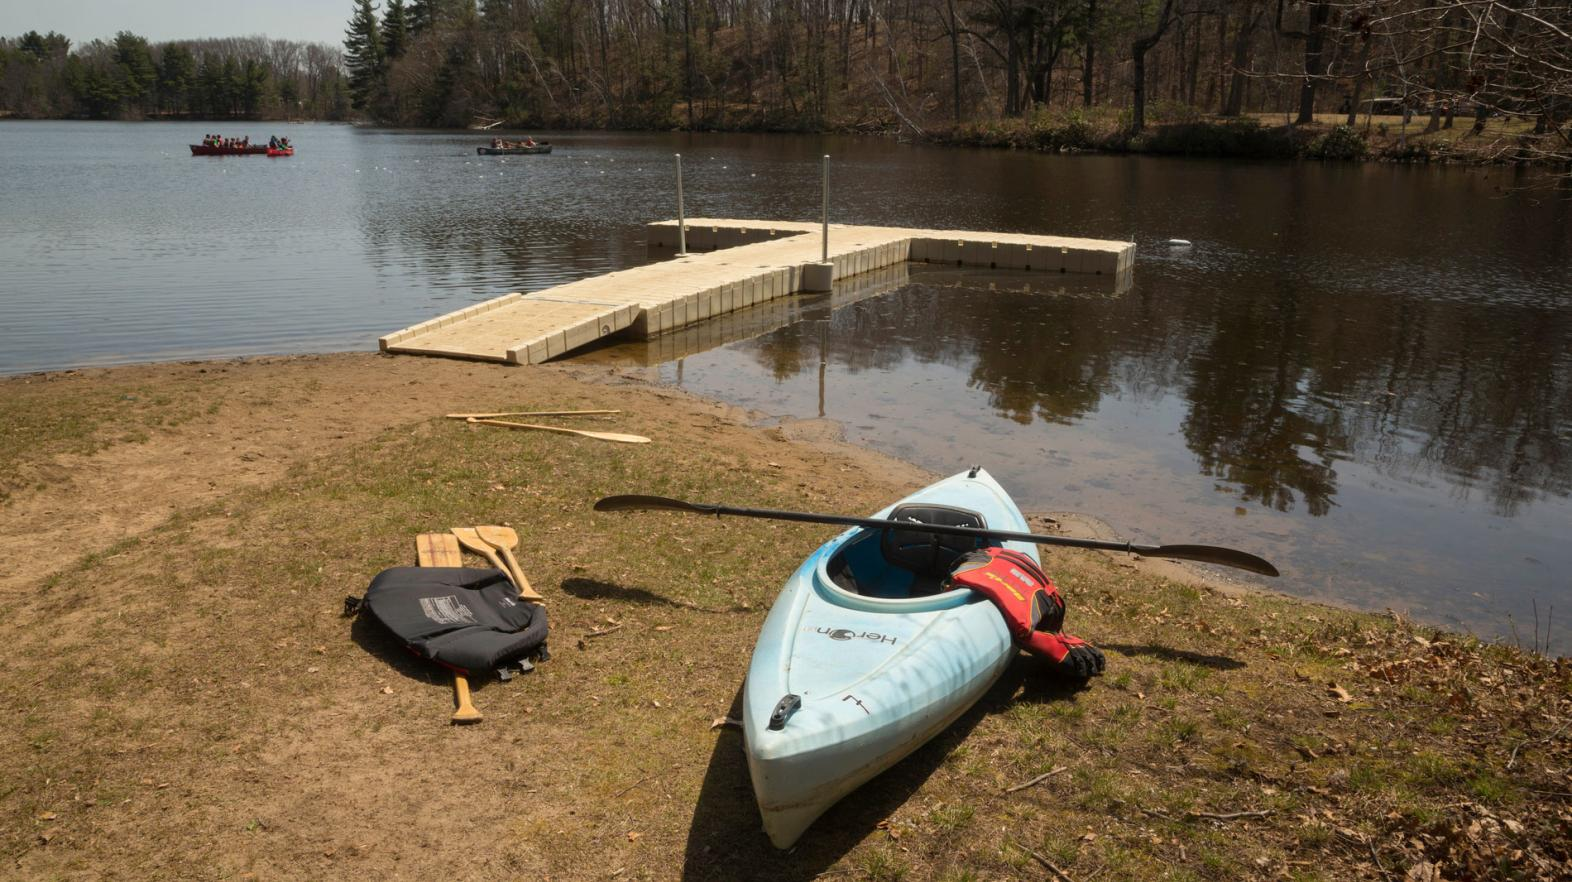 A kayak sits near the dock on the shores of Lake Massasoit